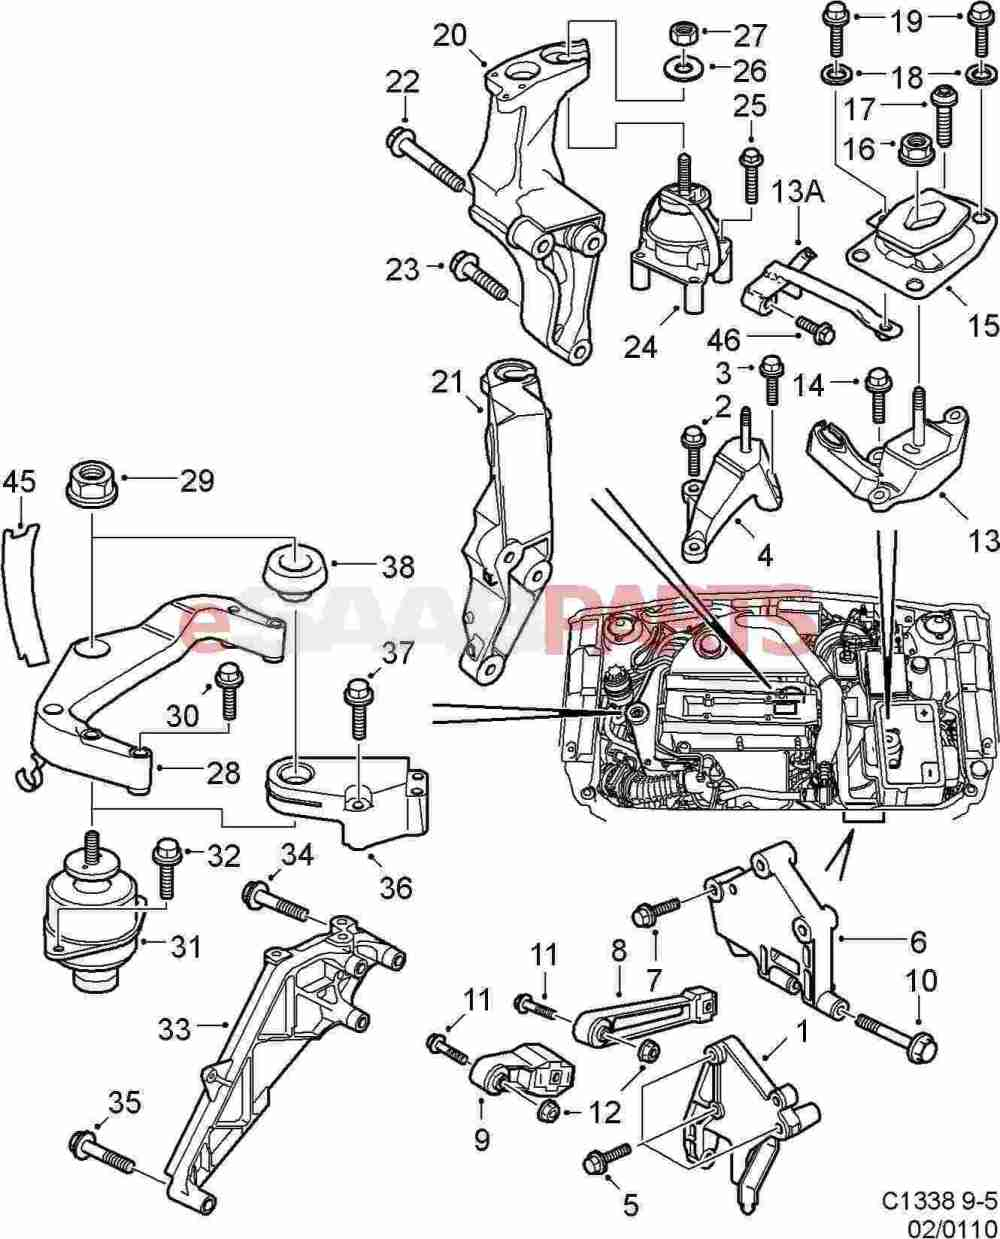 medium resolution of saab 9 5 engine diagram schematic wiring diagrams u2022 rh arcomics co saab 9 5 3 0